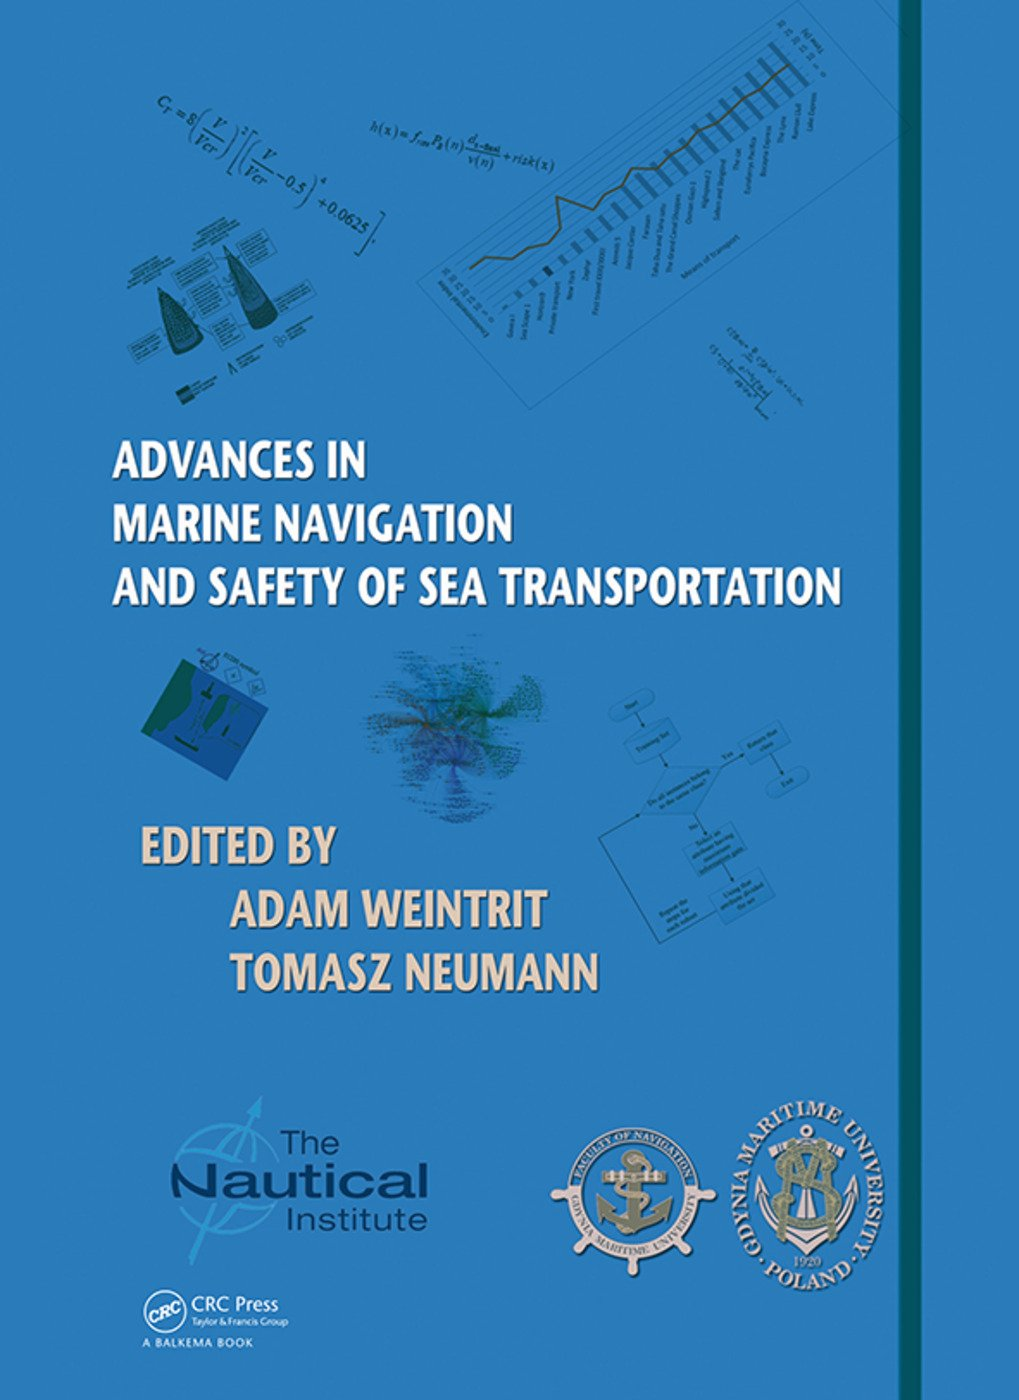 Advances in Marine Navigation and Safety of Sea Transportation. Introduction